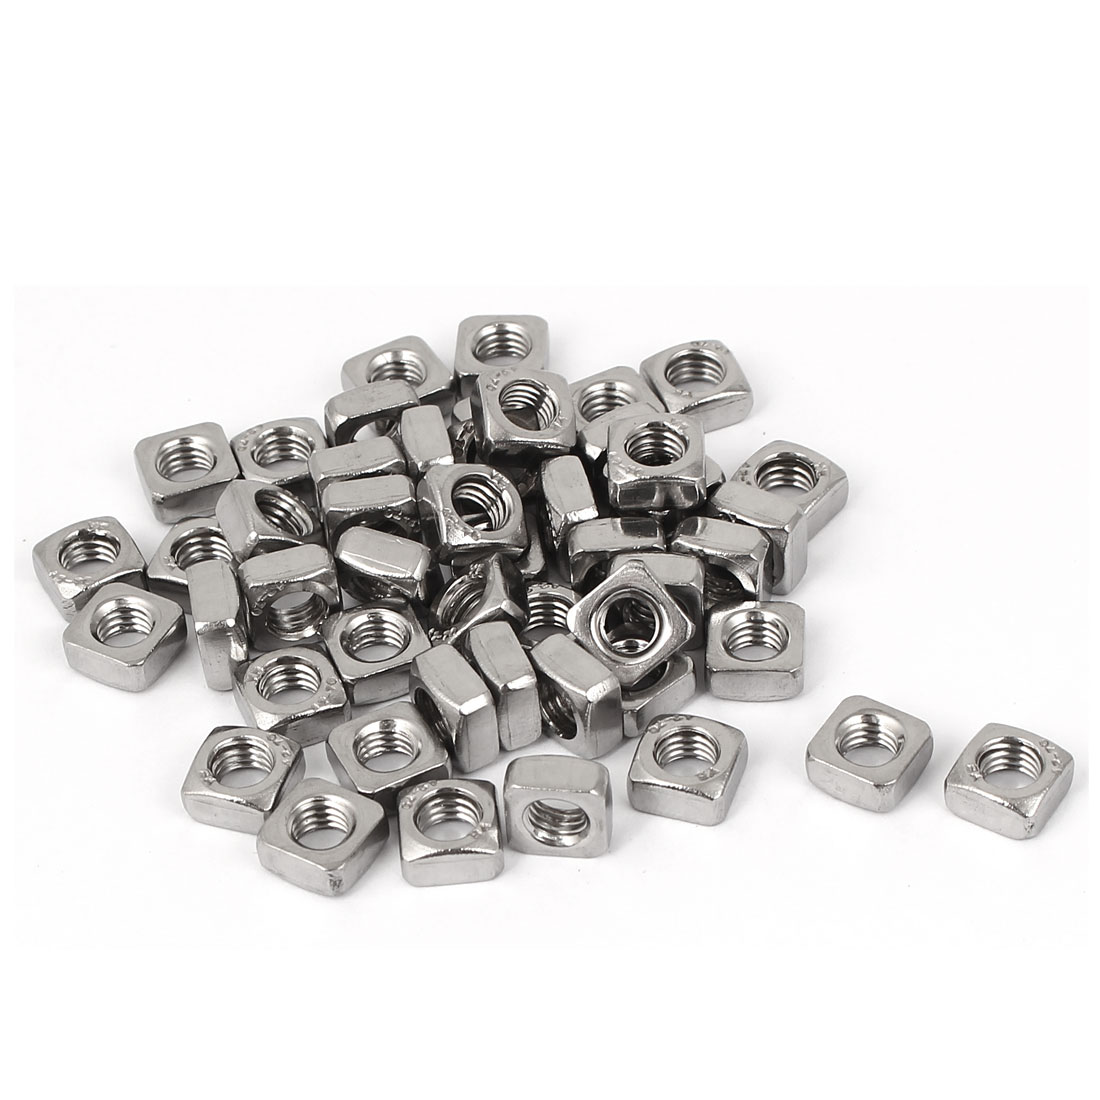 M5x8mmx4mm 304 Stainless Steel Square Machine Screw Nuts 50pcs